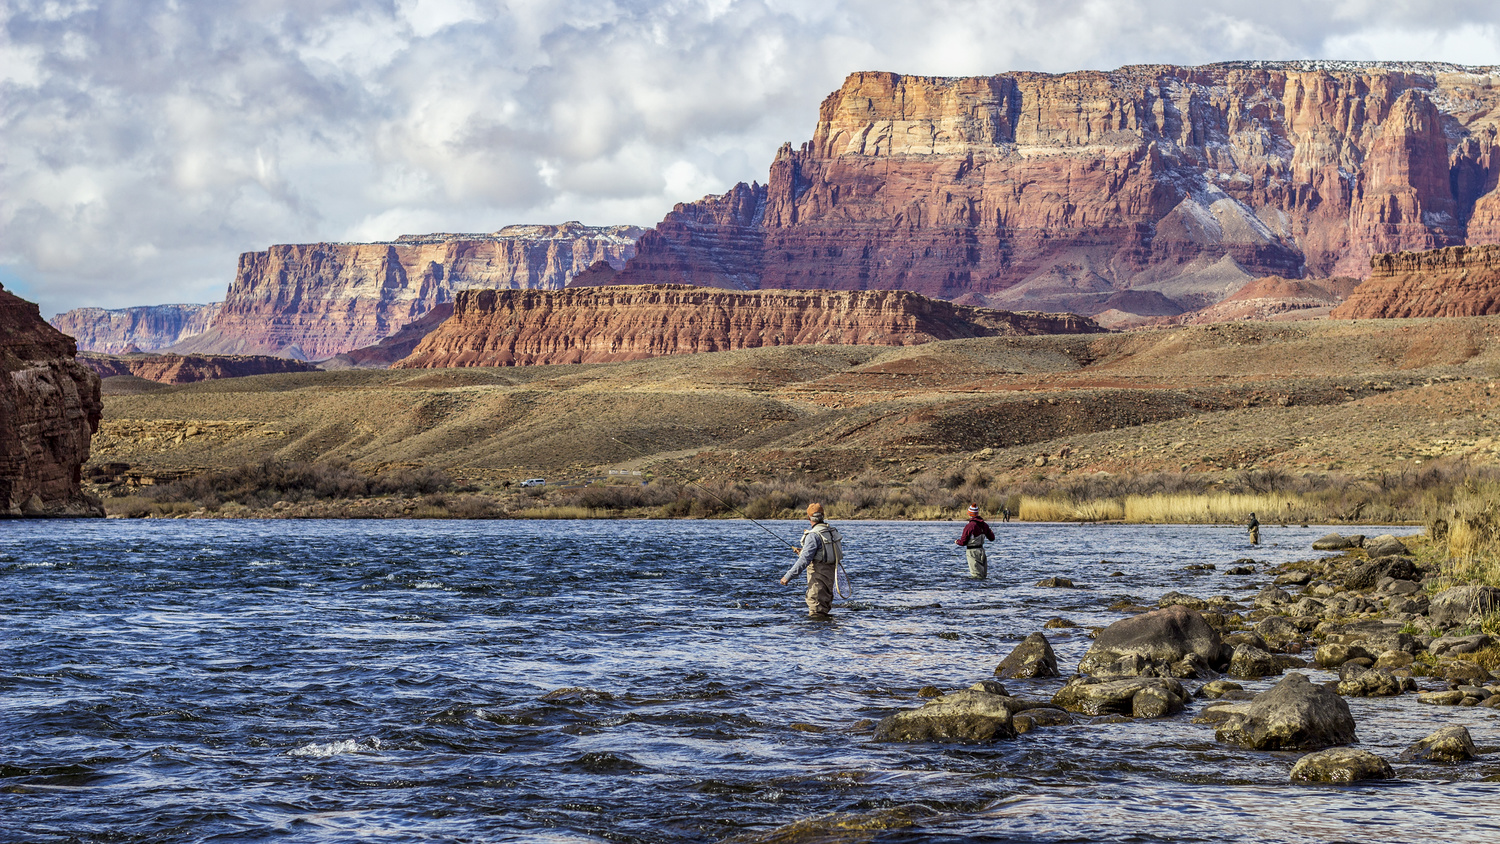 Fly Fishers On The Colorado River In The Southwest by Ray Redstone